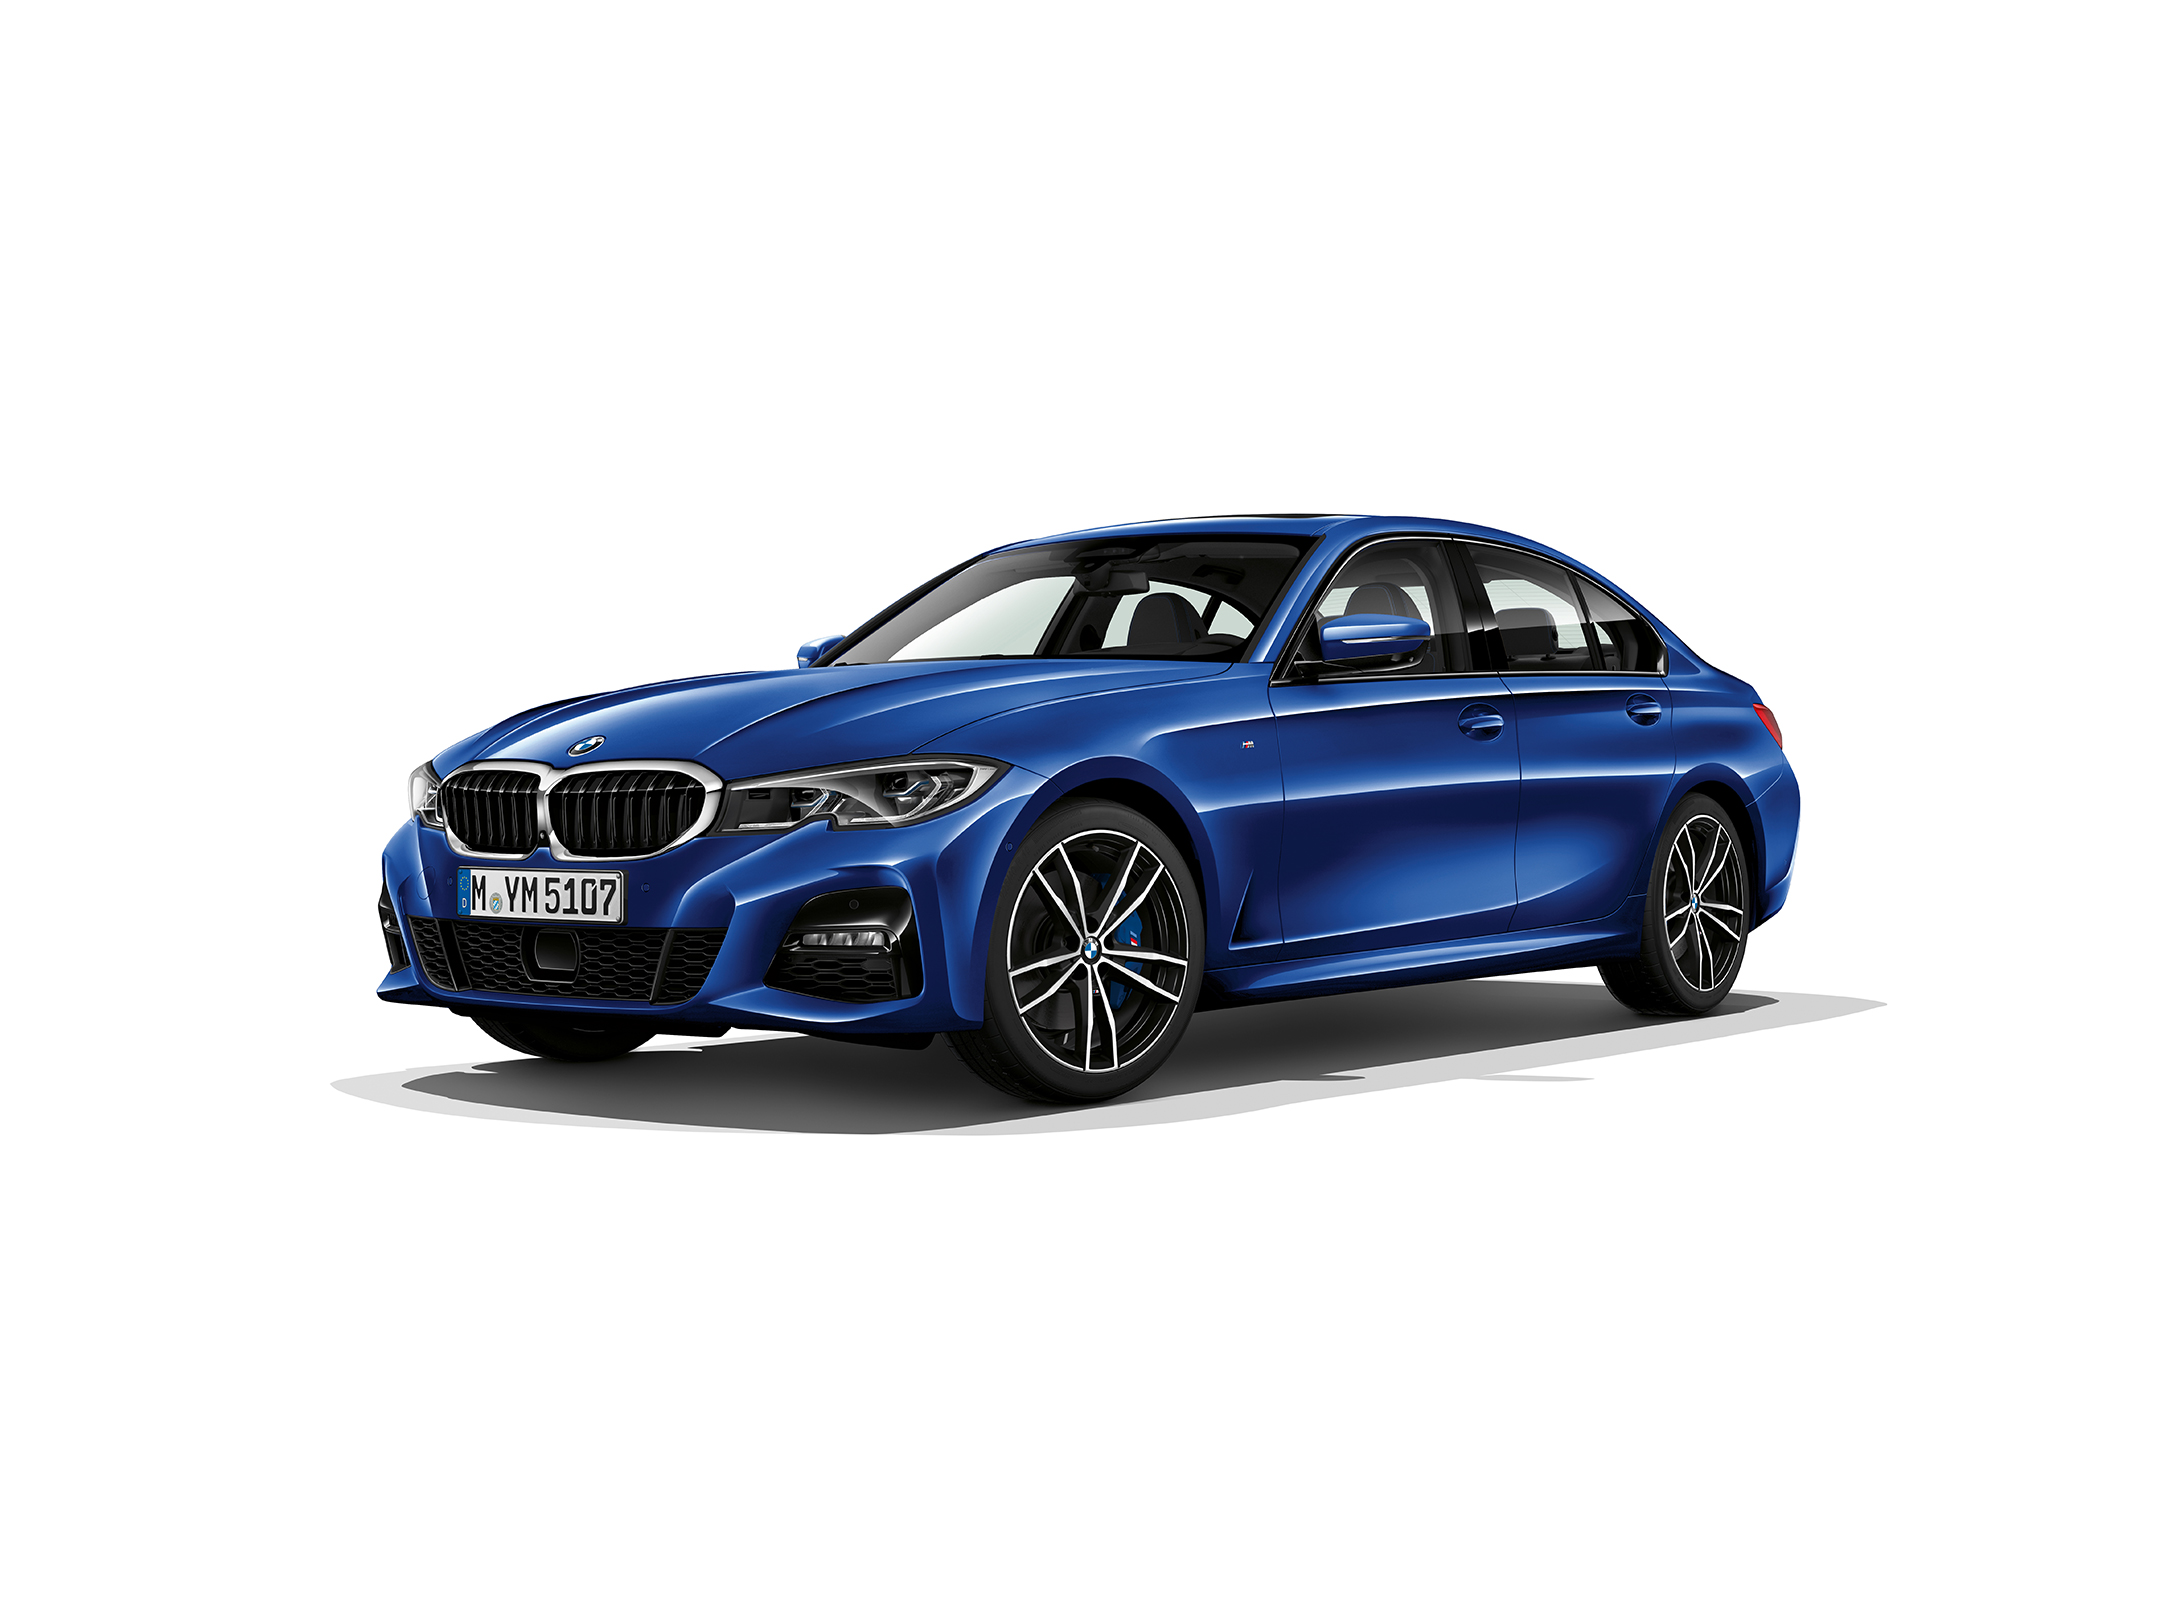 BMW Serie 3 Berline - 2018 - front side-face / profil avant